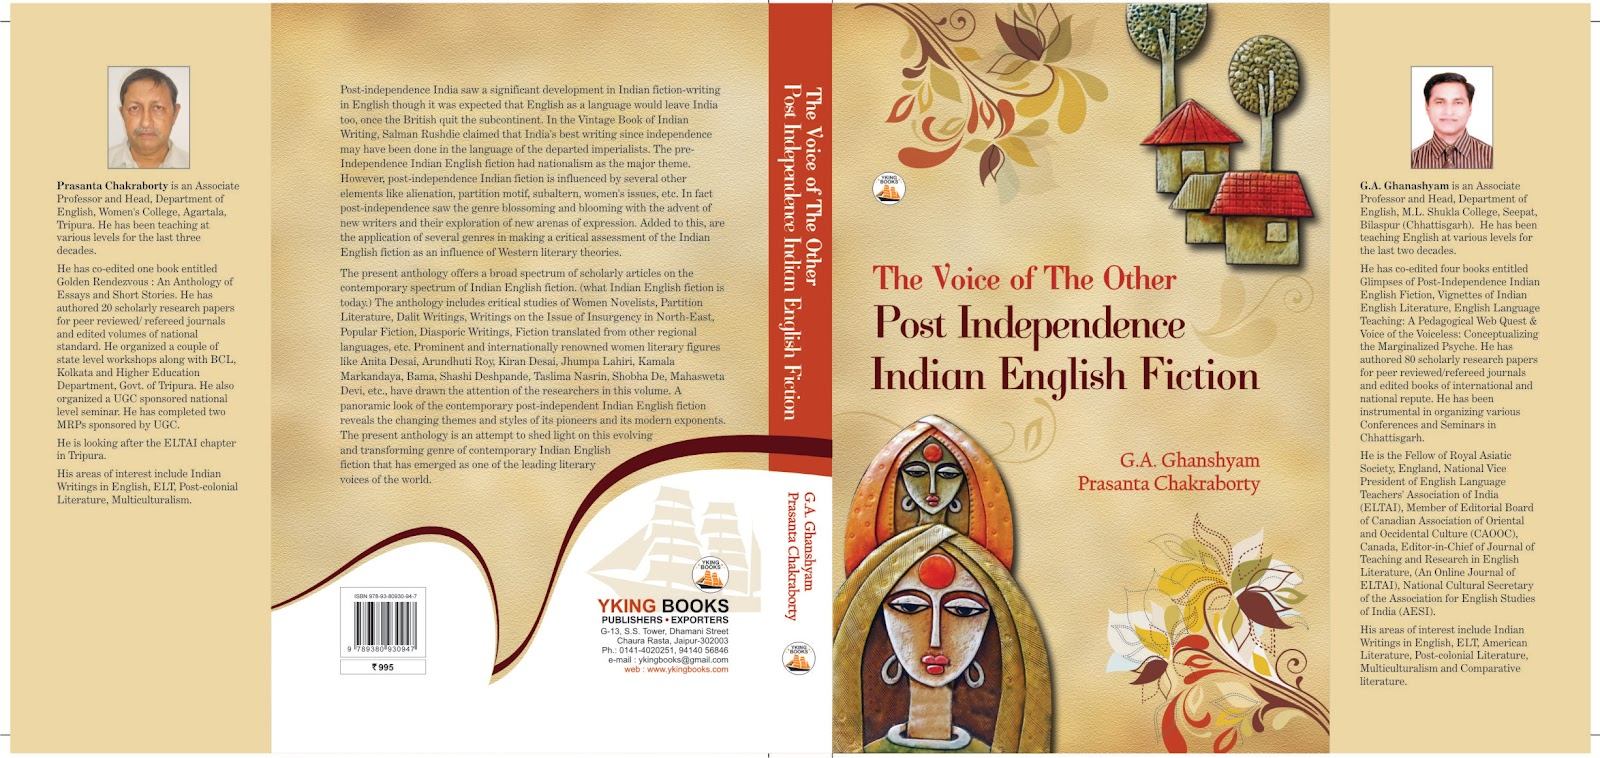 evolution and development in indian literature english literature essay In this essay i shall examine two of his  development of indian english drama  indian english literature pertains to that body of work by writers.